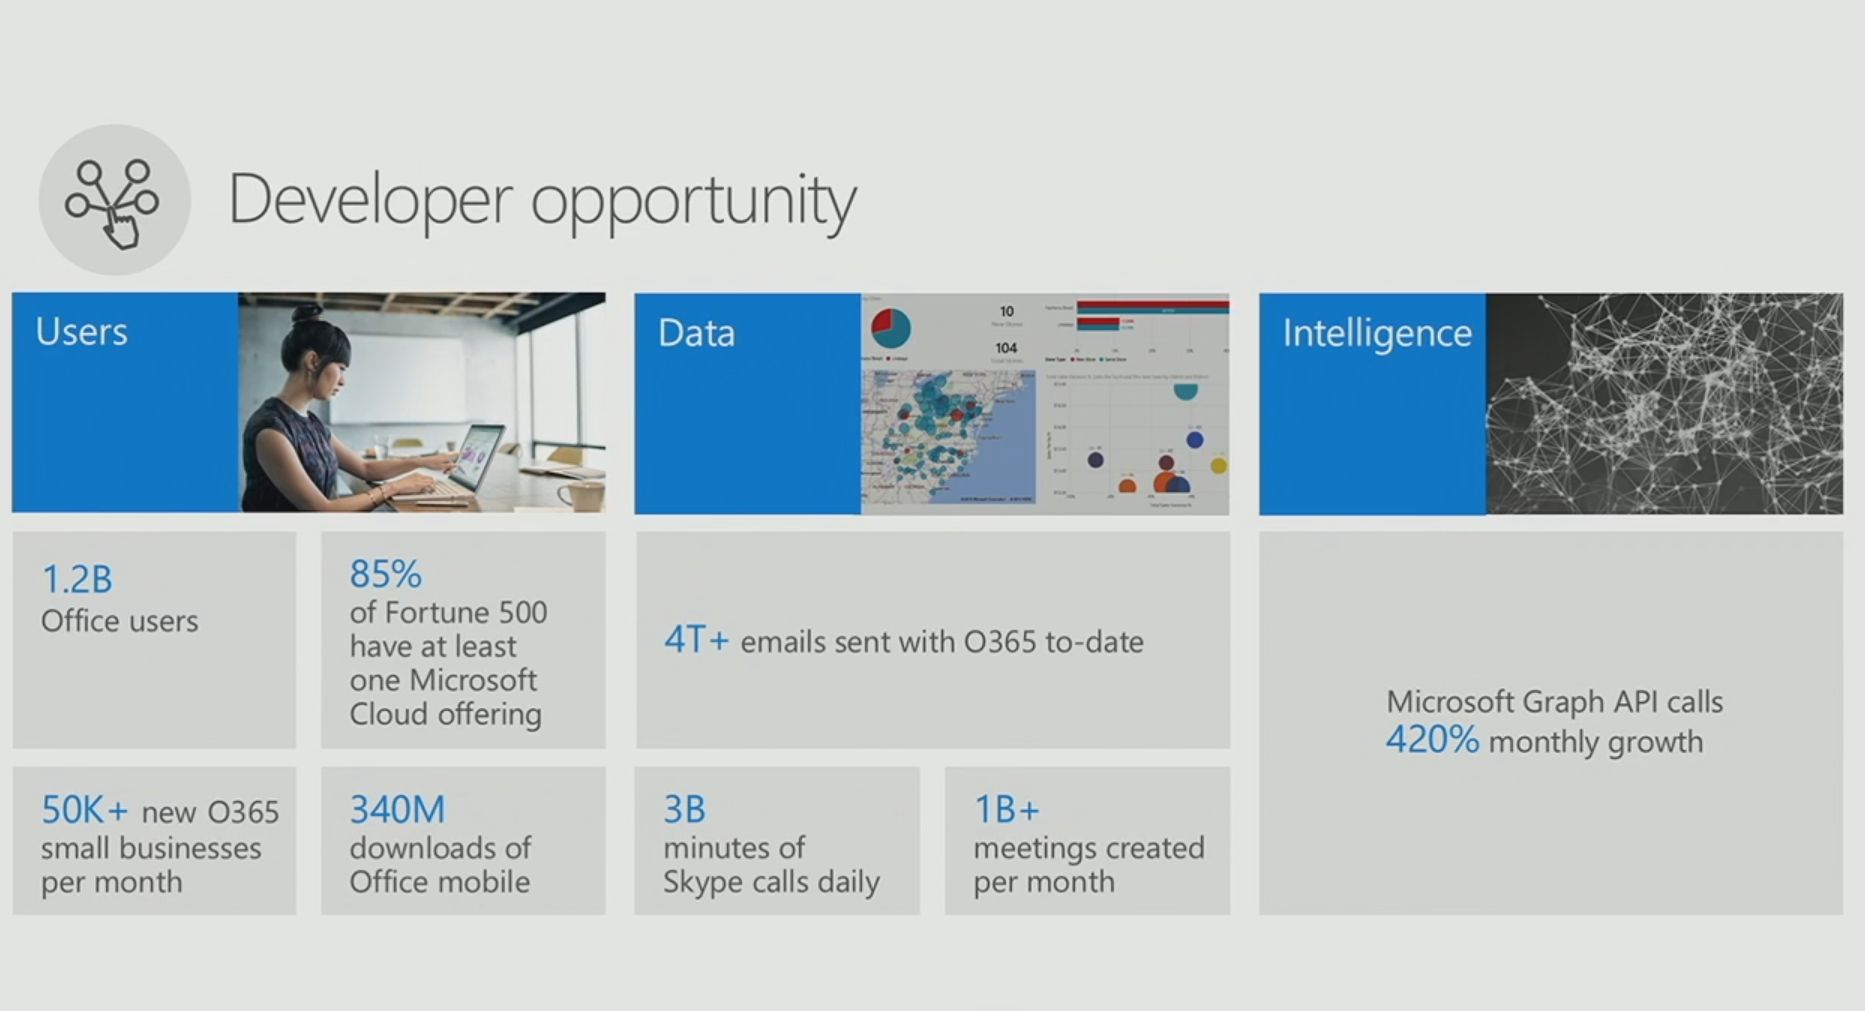 Microsoft Products There Are Now 1 2 Billion Office Users And 60 Million Office 365